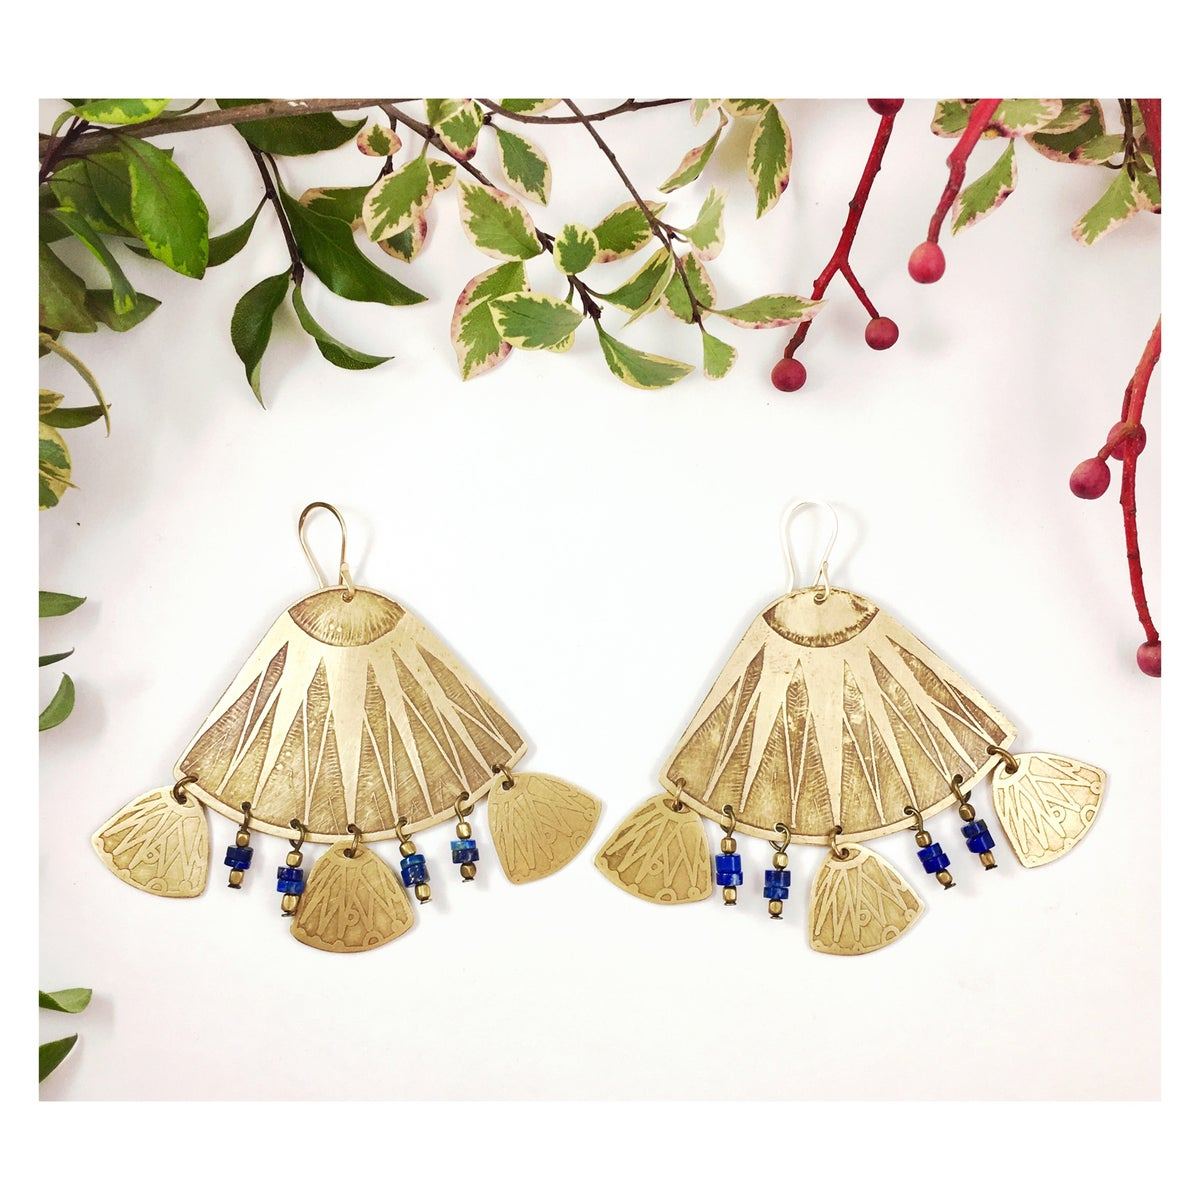 Image of Pattini Earrings with Lapis